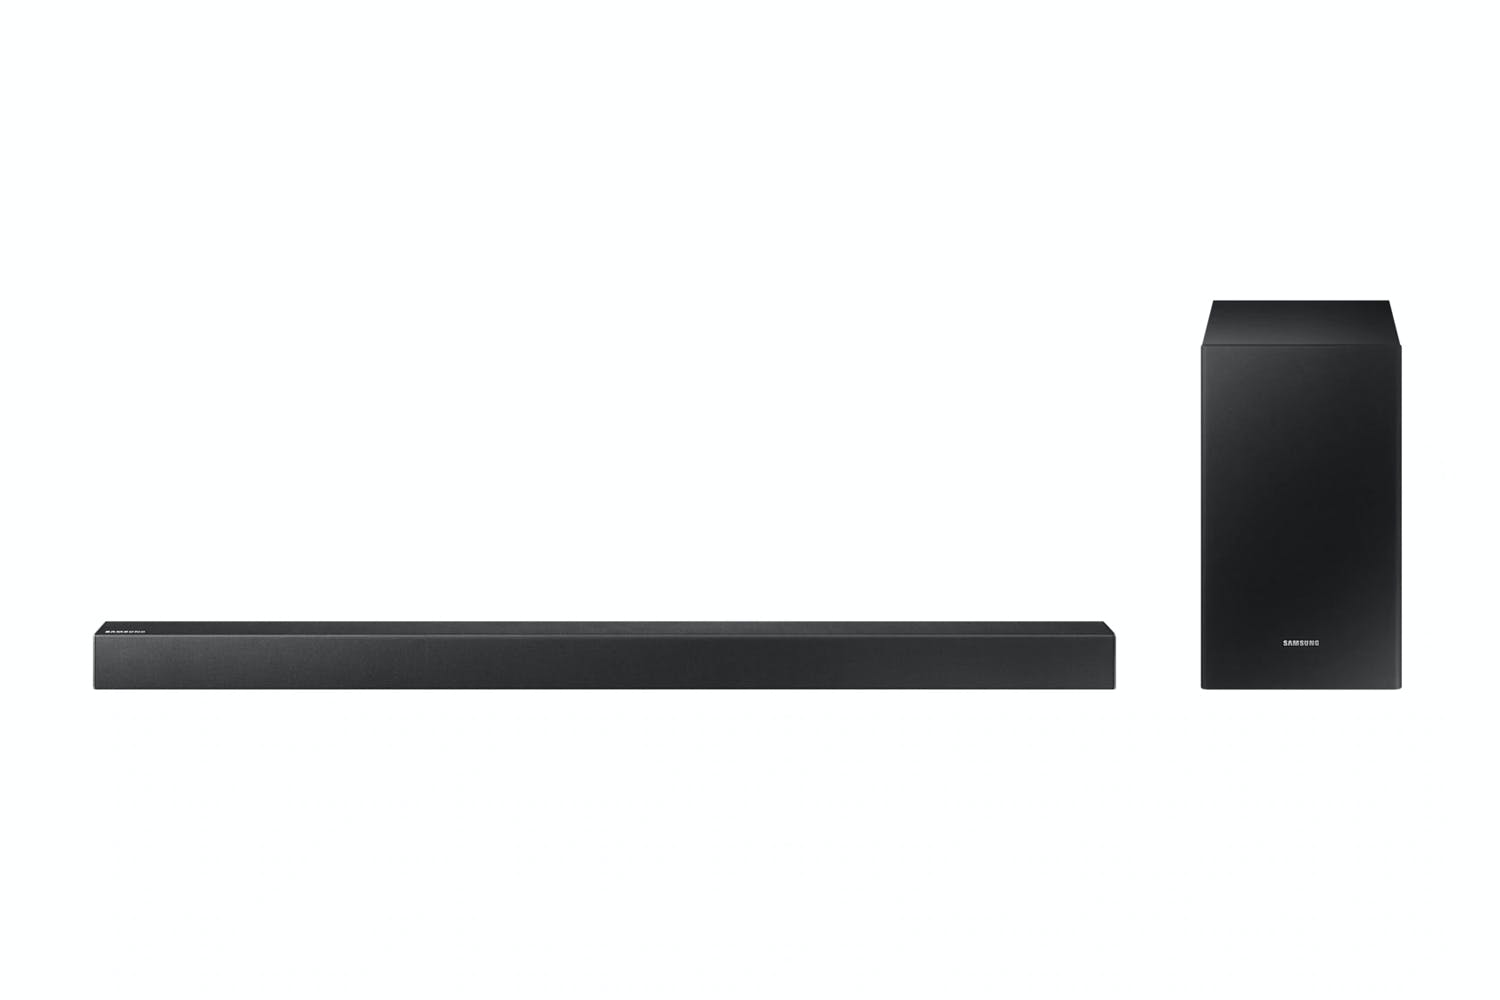 Samsung 2 1 Channel Soundbar + Wireless Subwoofer